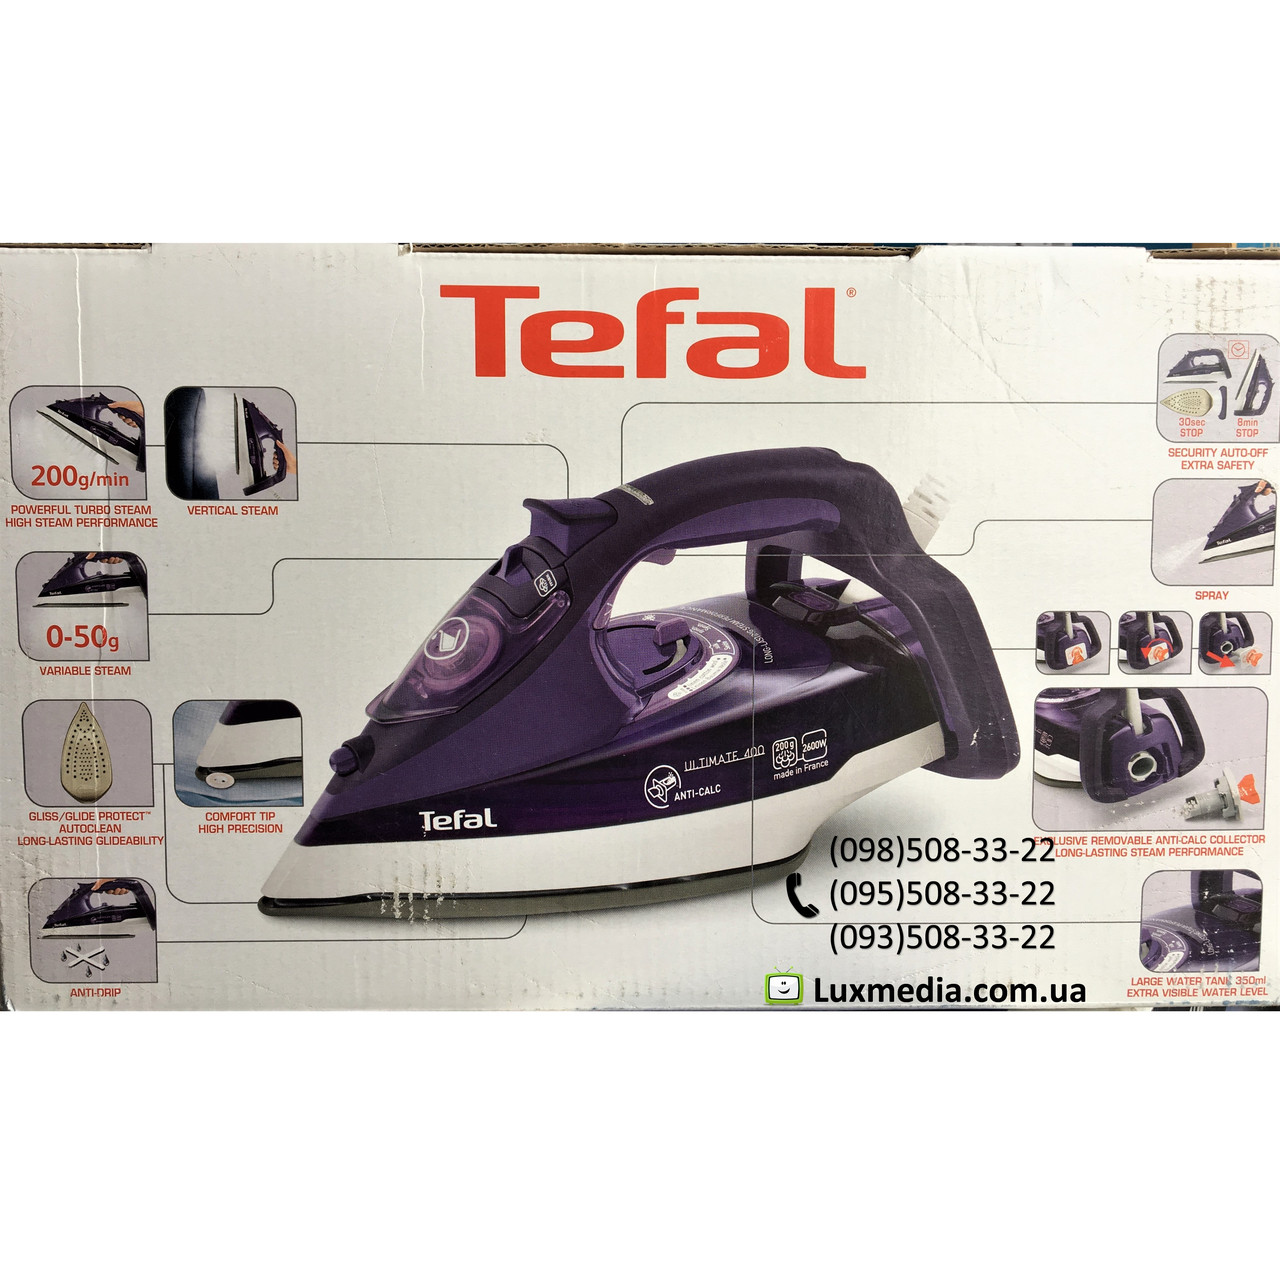 Утюг с паром Tefal Ultimate Anti-Calc FV9640E0 (2600 Вт, 50 г/мин, паровой удар 200 г/мин, Autoclean Cathalys)